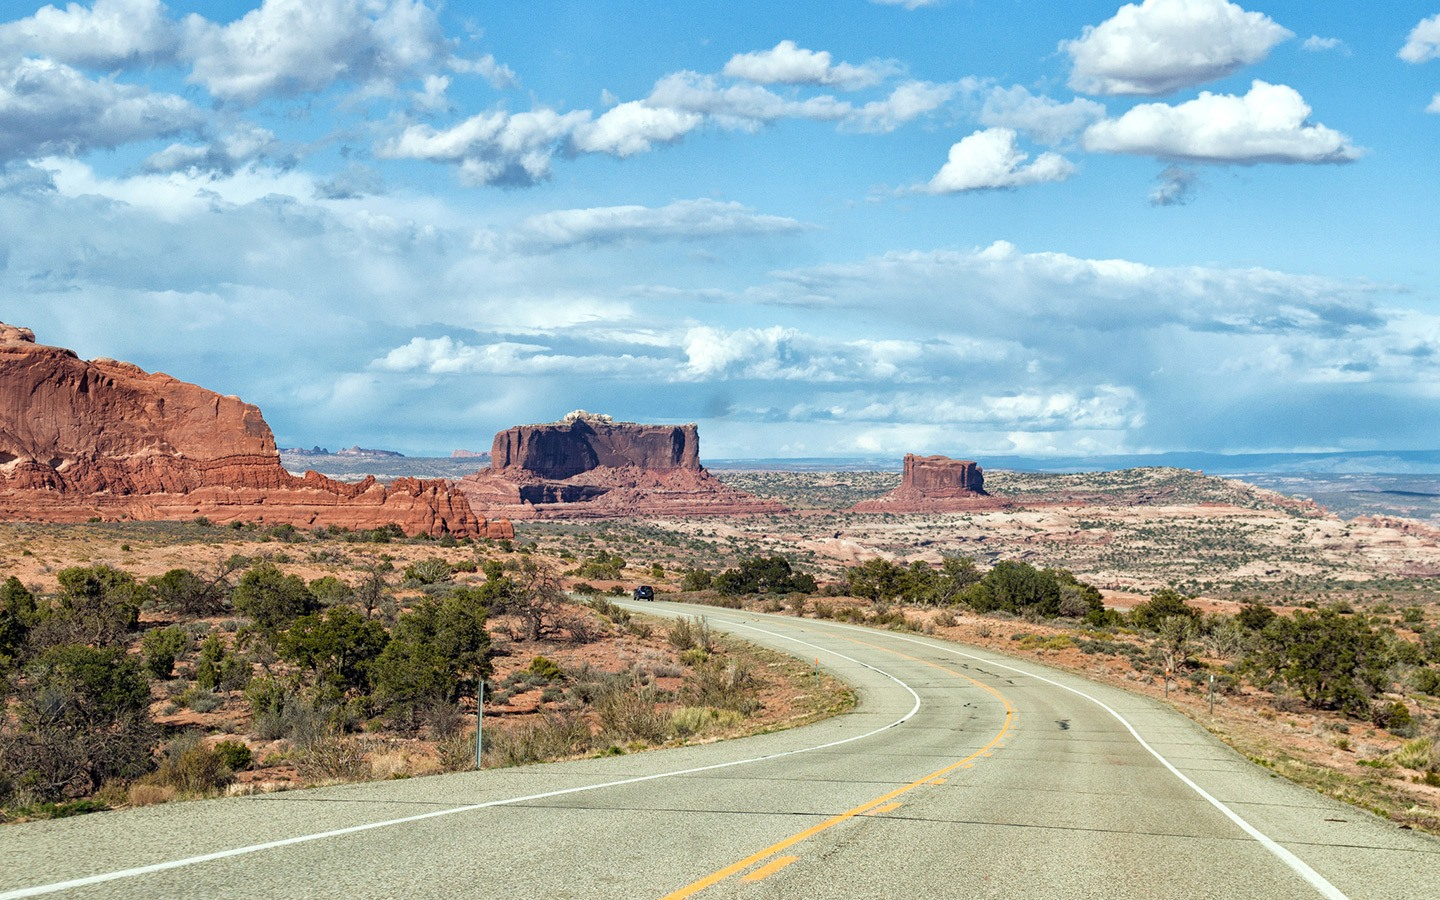 Road trip views in the southwest USA